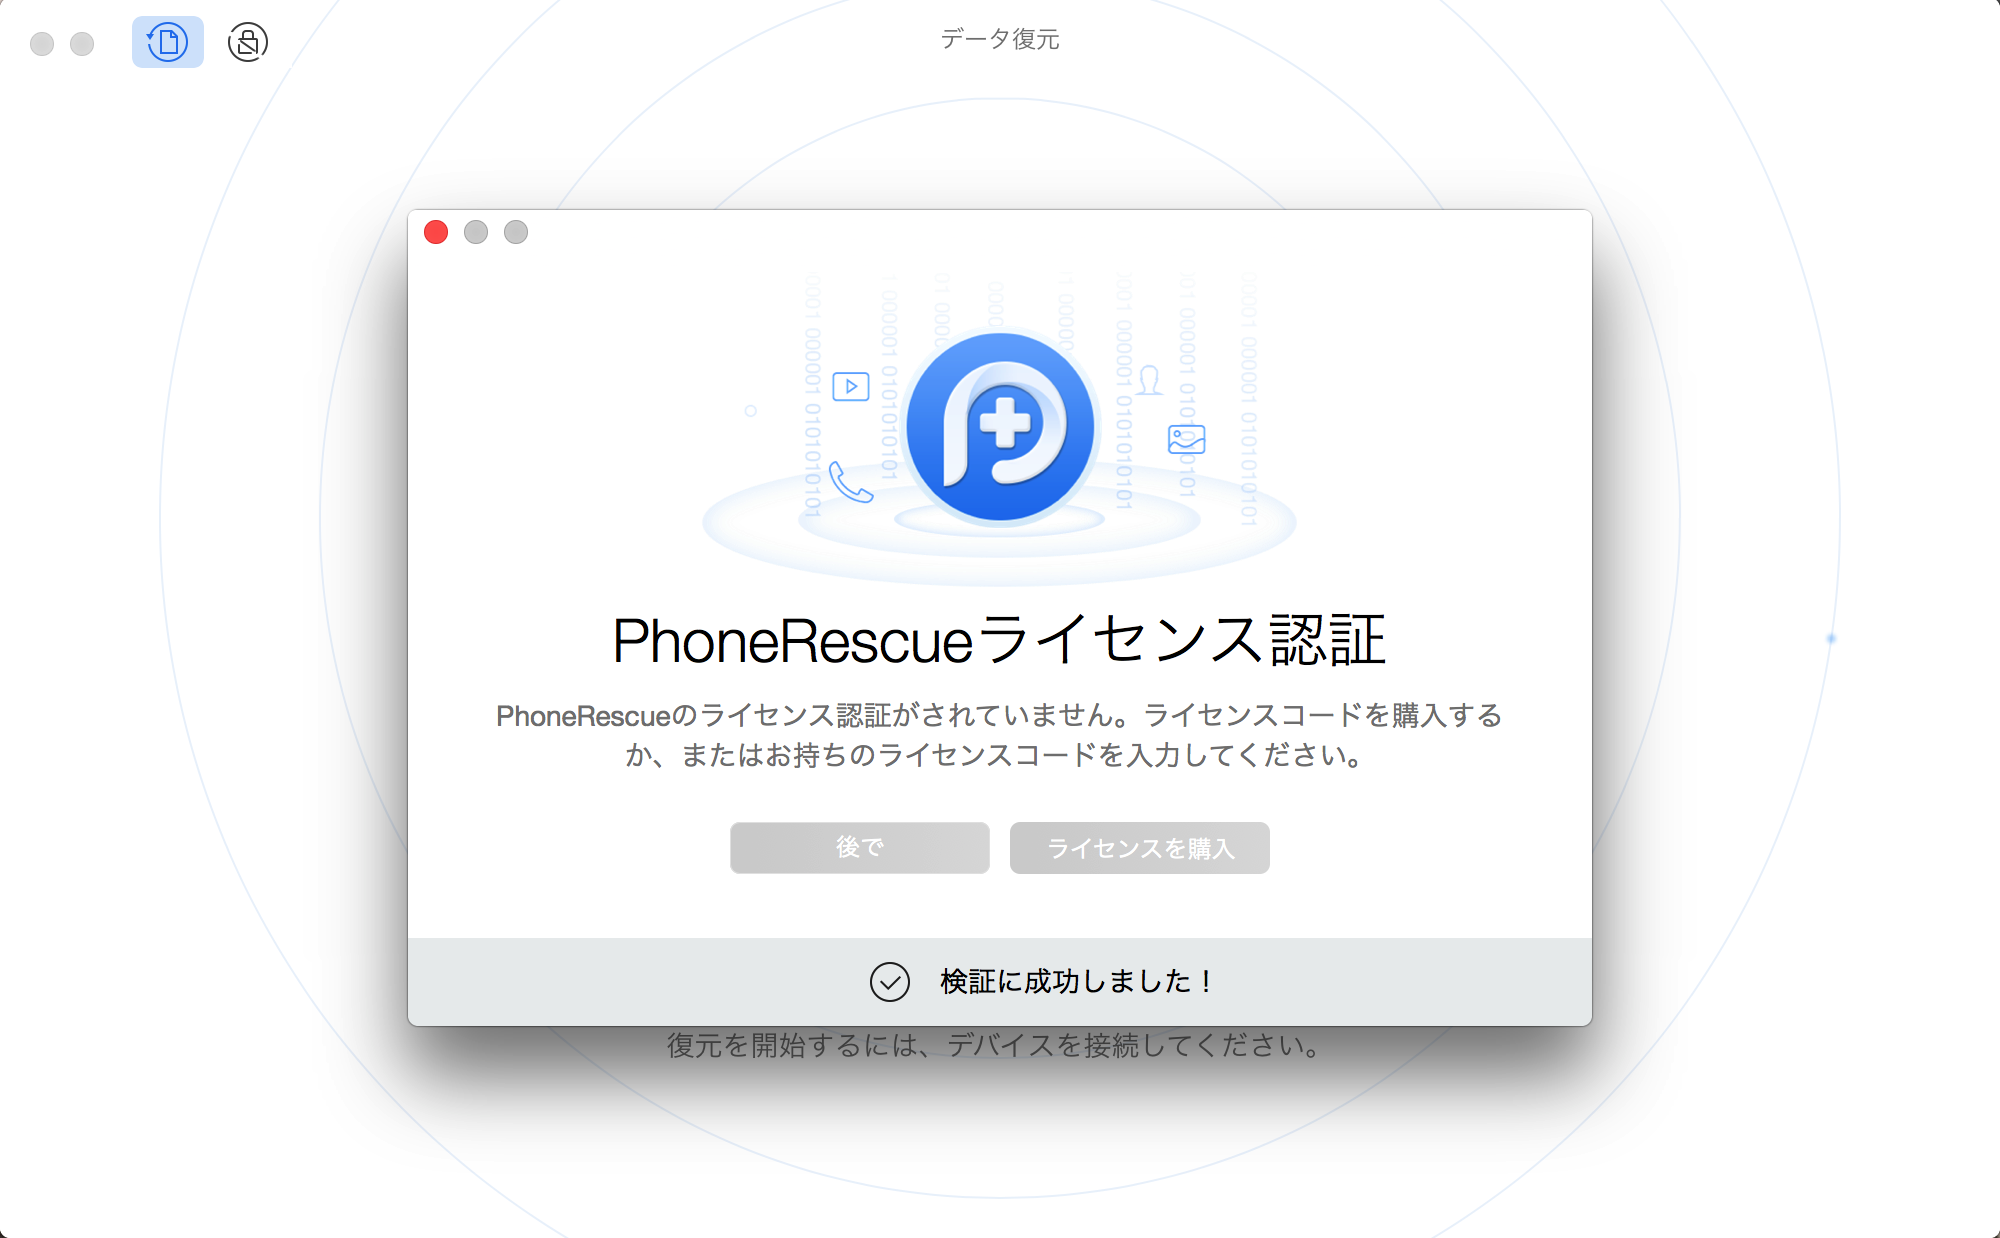 PhoneRescue for HTCの登録は成功